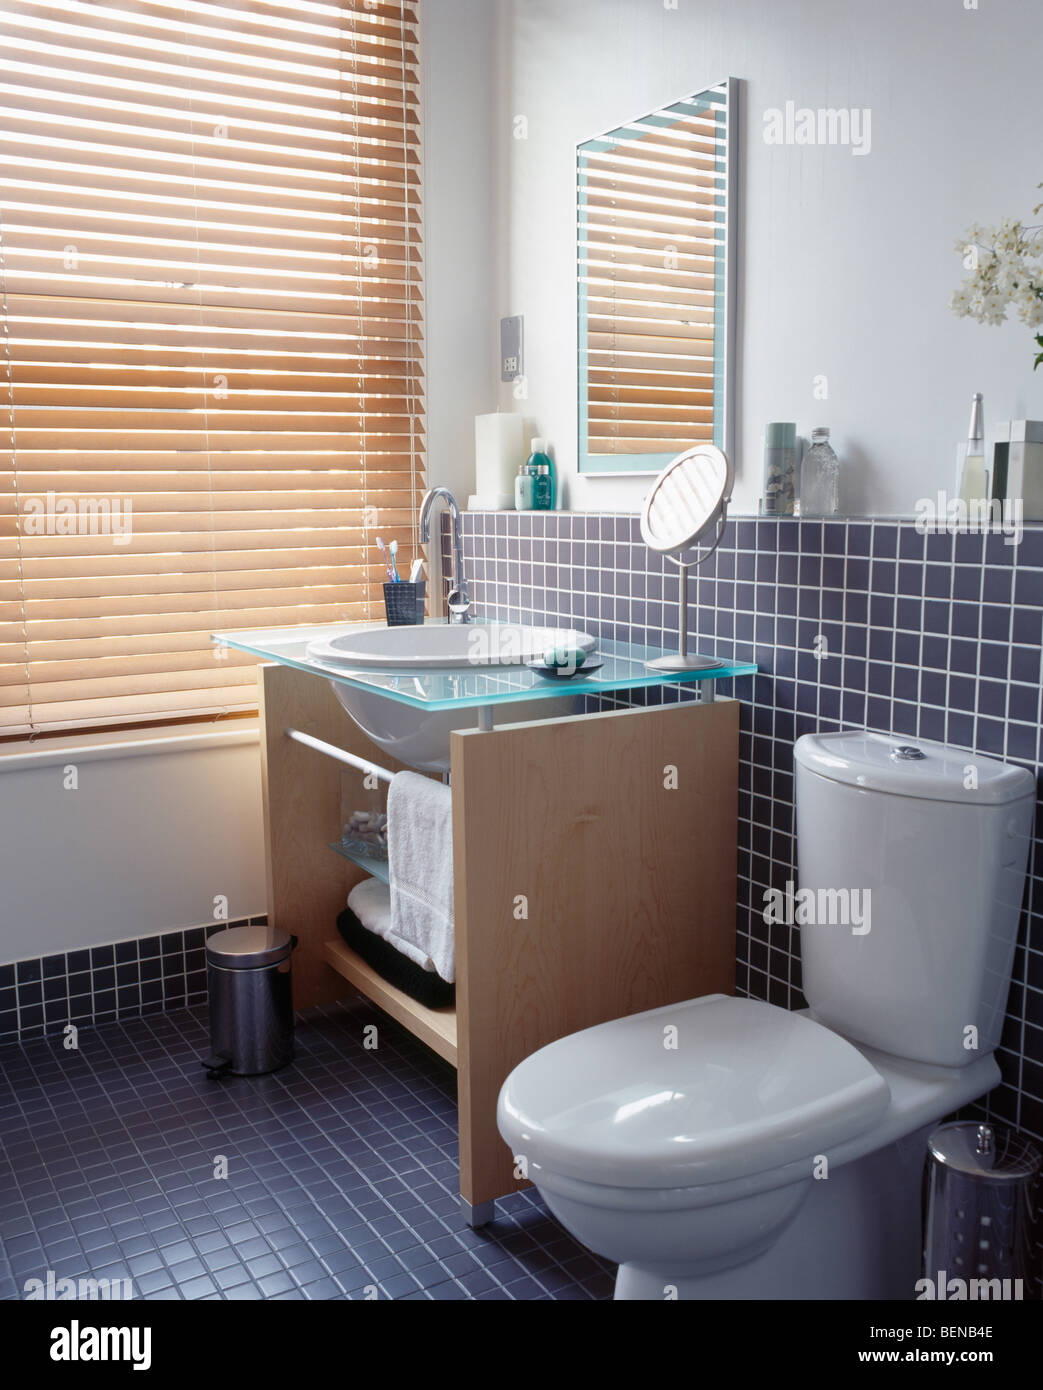 Modern black tiled bathroom with basin in glass and wood vanity ...